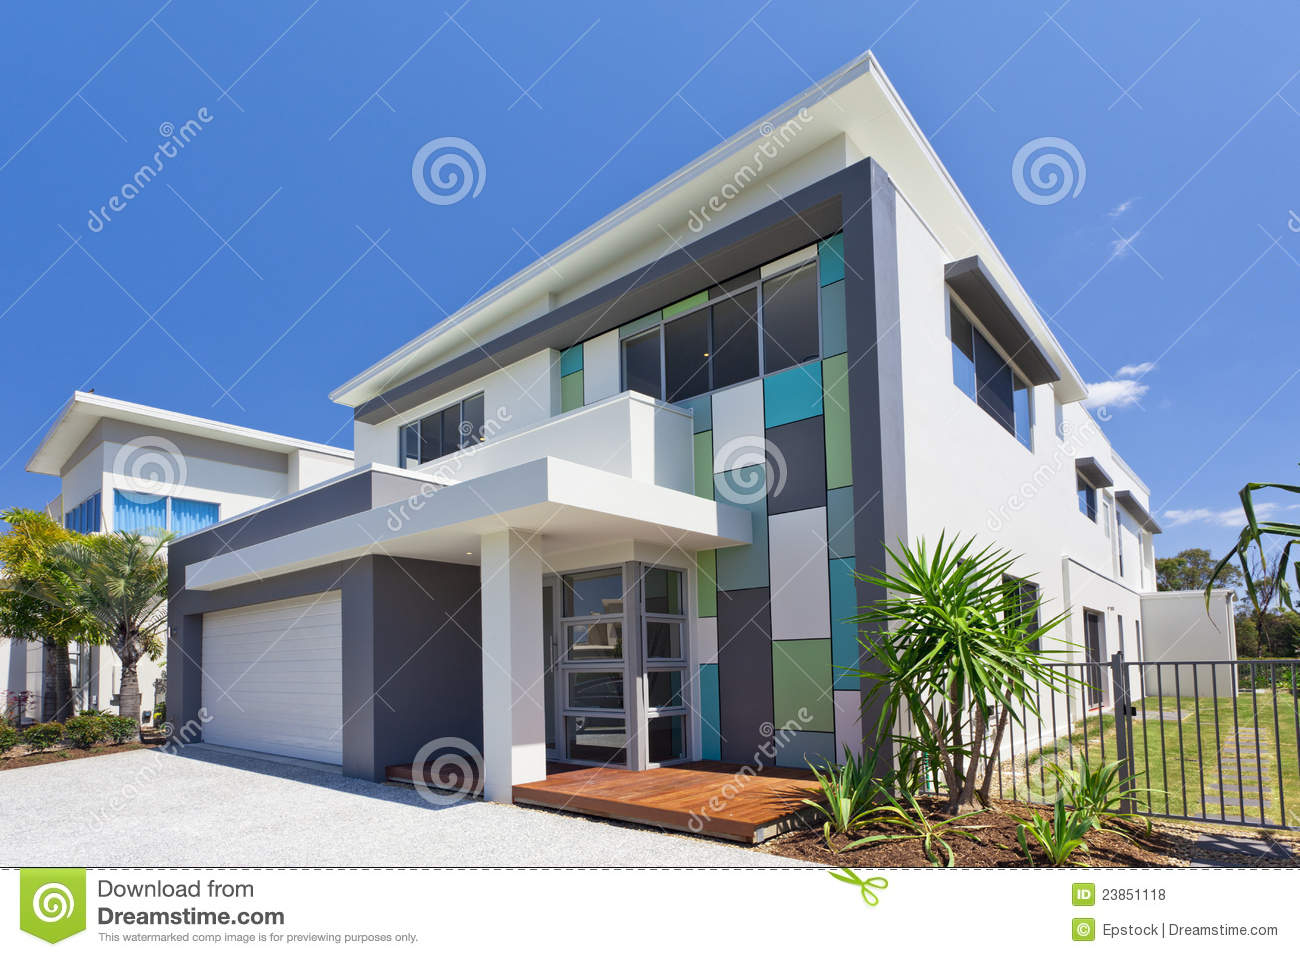 Modern House Front oyalty Free Stock Photos - Image: 23851118 - ^